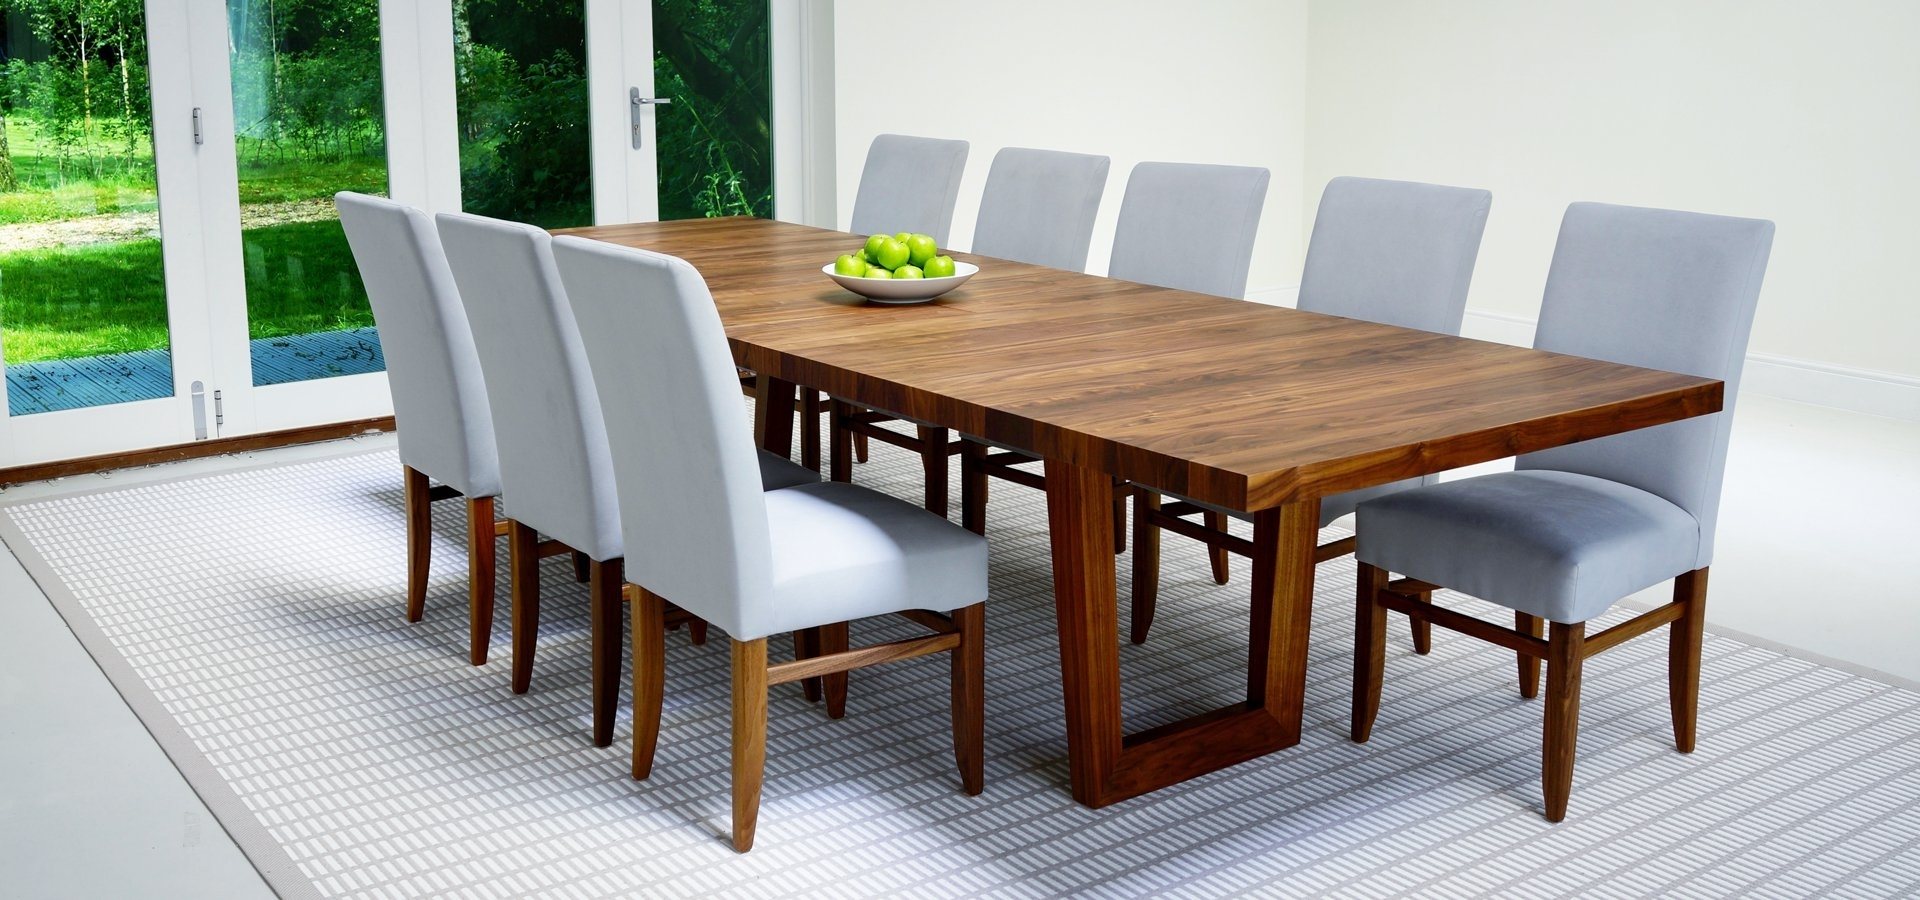 Extending Dining Table Sets – Castrophotos Intended For Most Popular Extending Dining Room Tables And Chairs (Gallery 2 of 25)